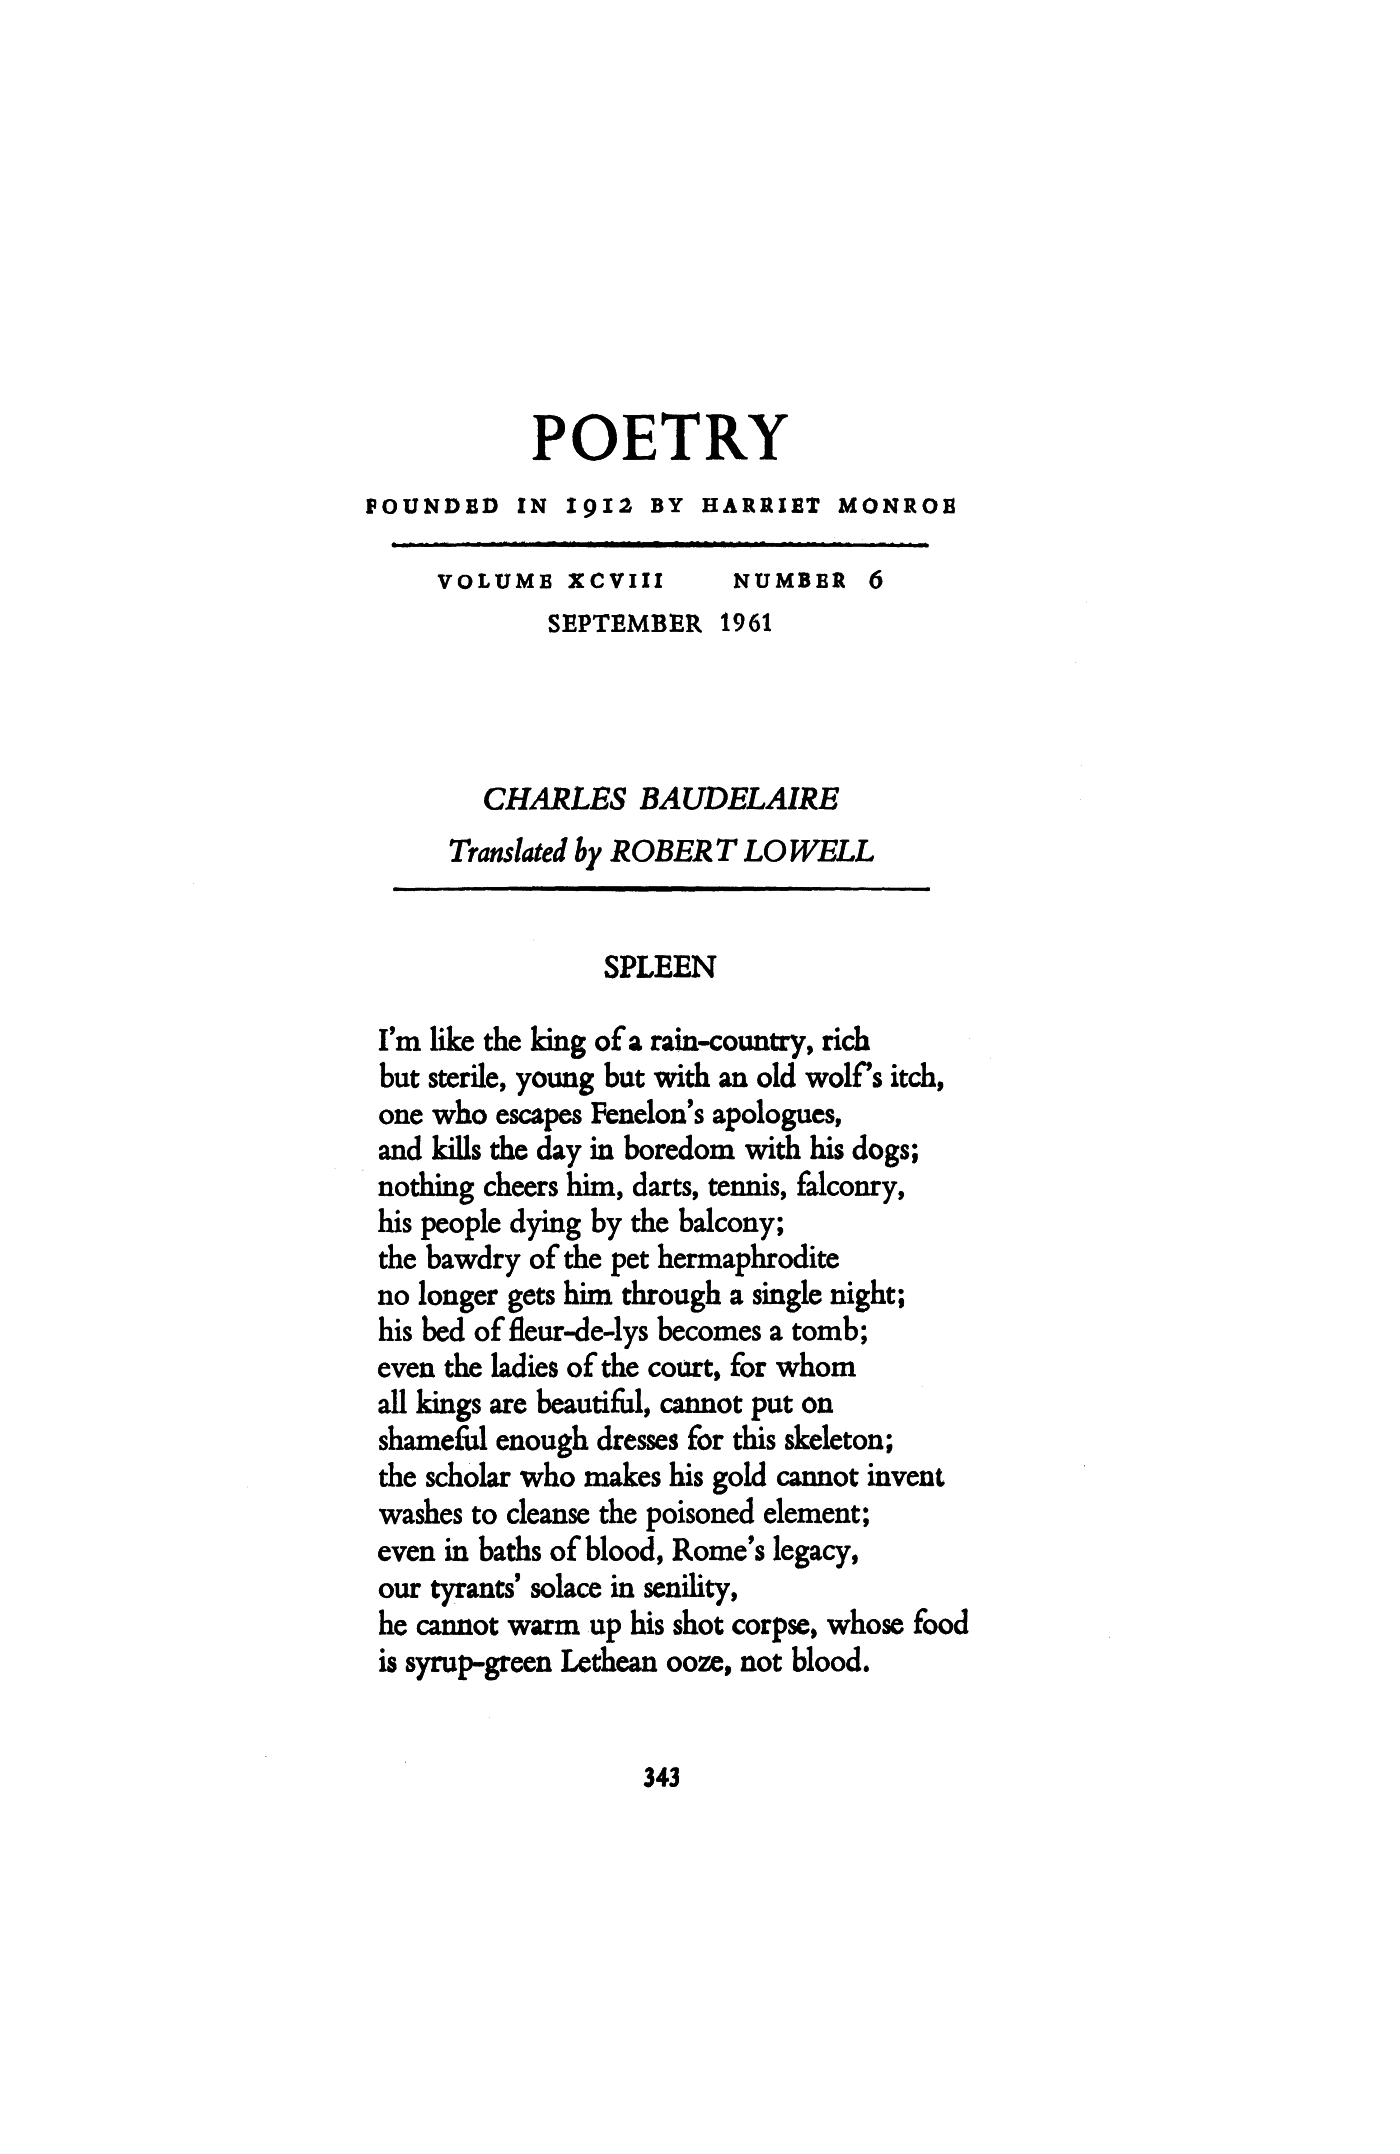 Spleen by Charles Baudelaire | The Flawed Bell by Charles ...